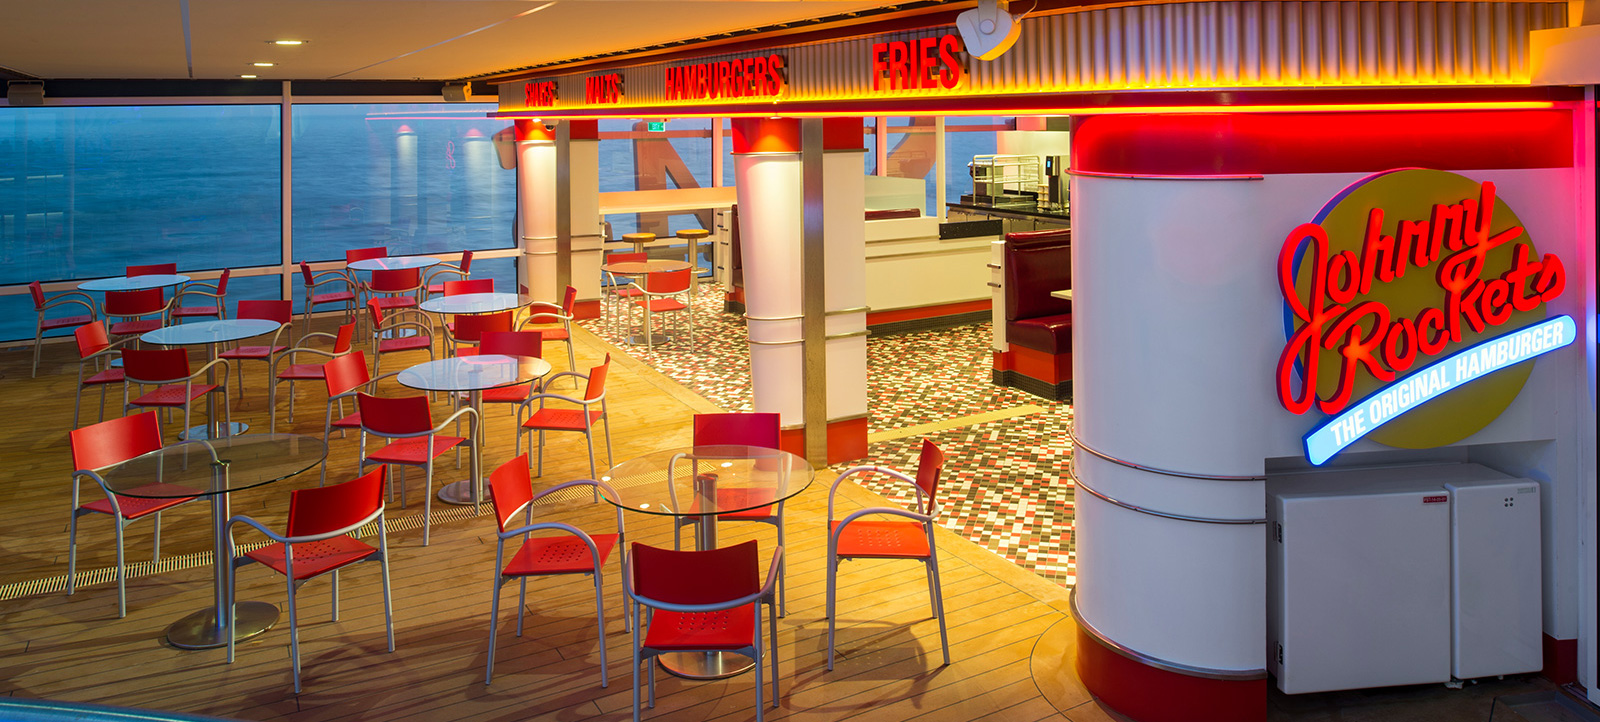 Quantum of the Seas - JohnnyRockets - Photo: royal caribbean cruise line